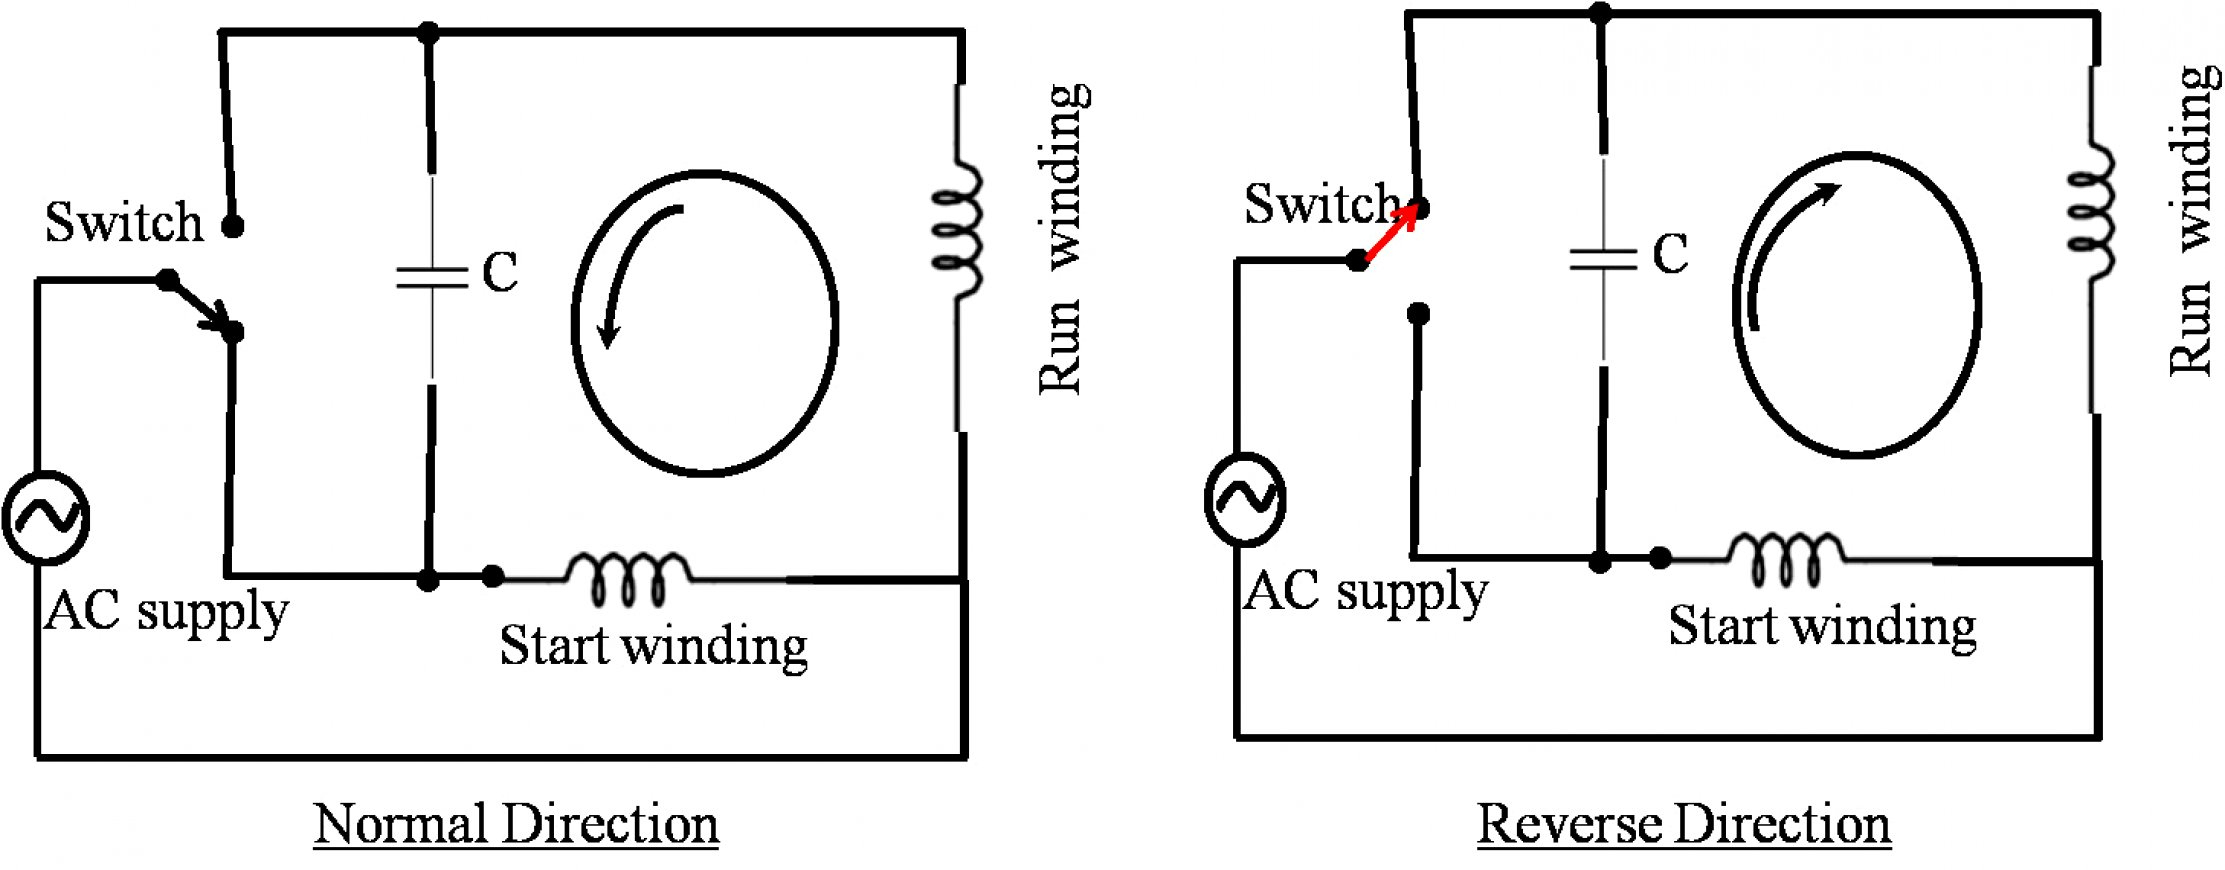 Reversing Single Phase Motor Wiring Diagram